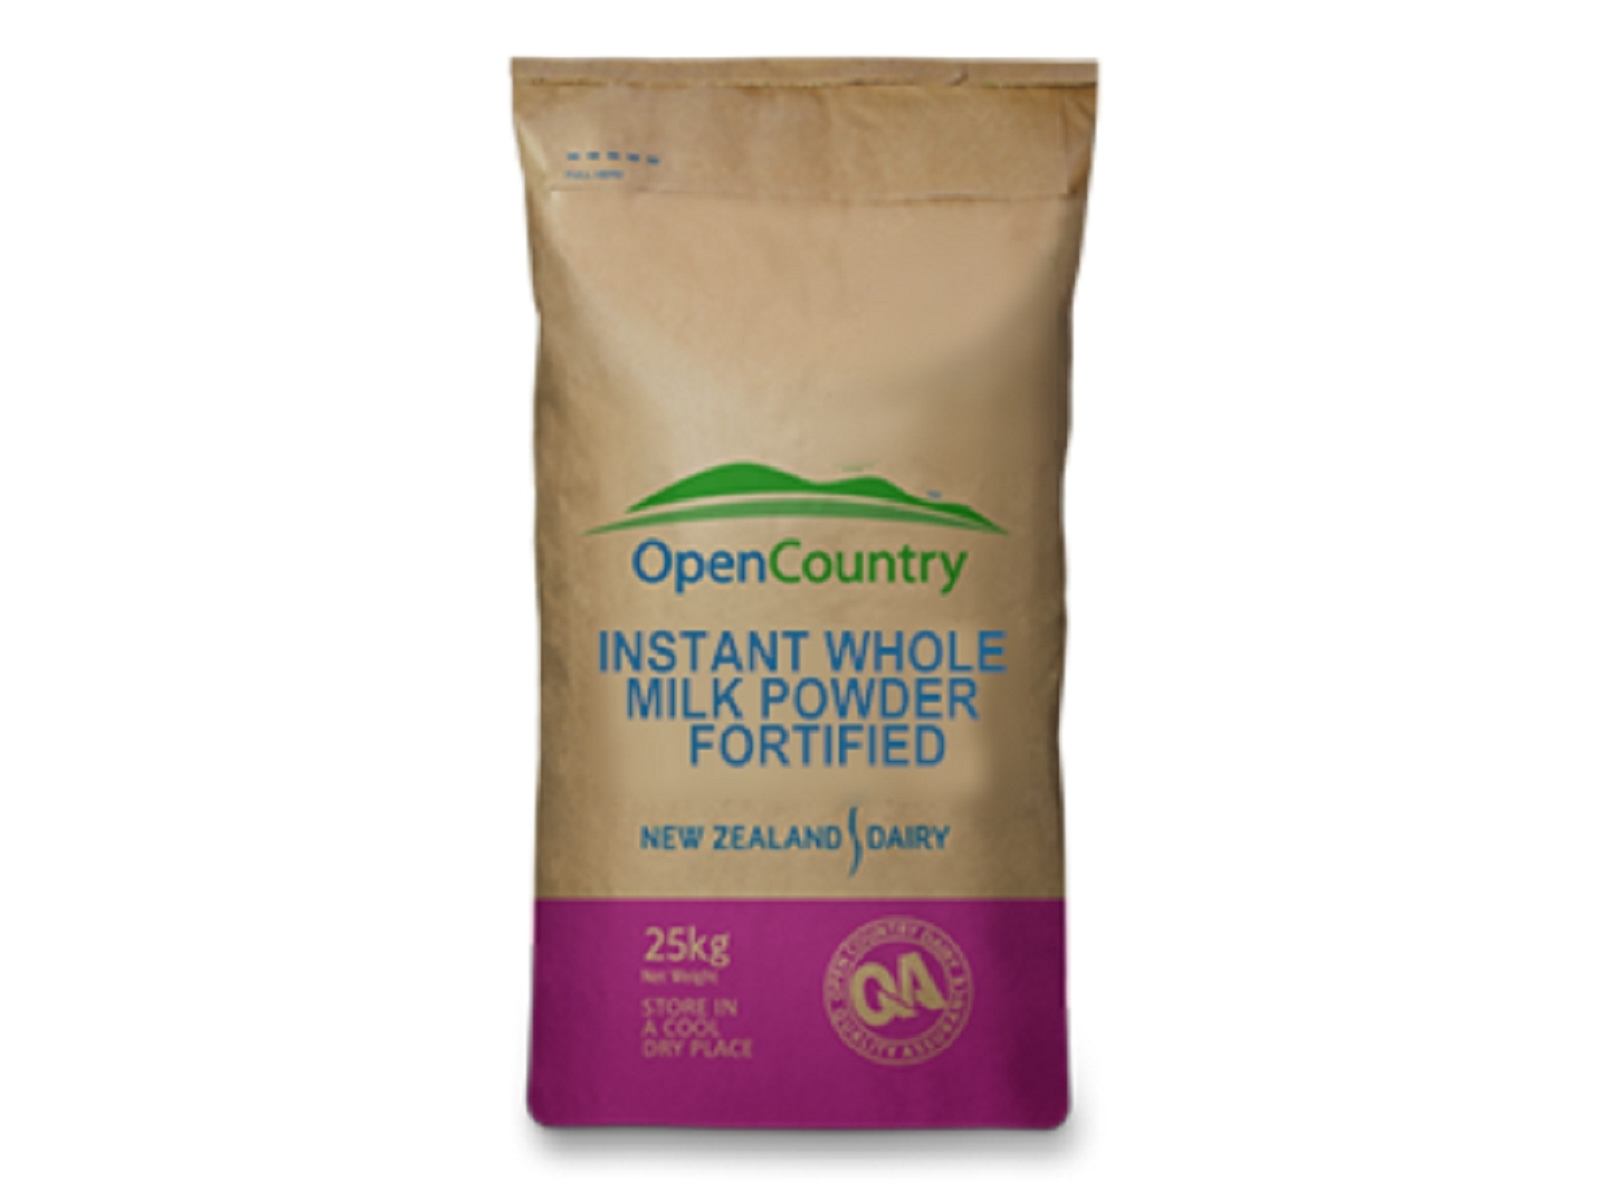 Open Country Instant Whole Milk Powder 25kg